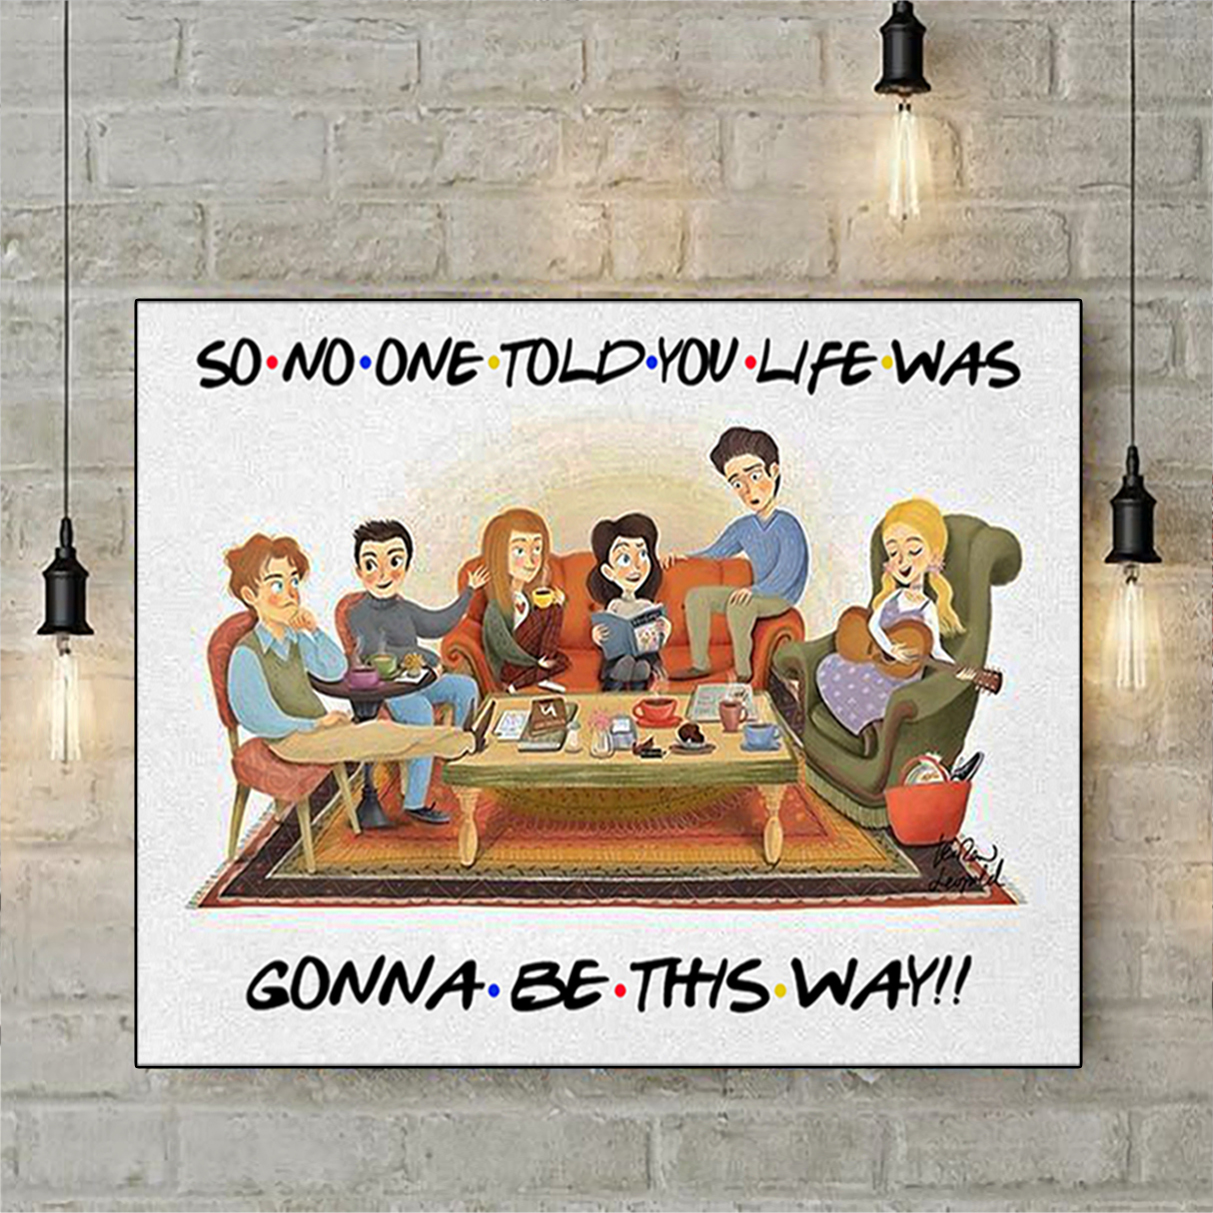 Friends so no one told you life was gonna be this way poster and canvas prints A1